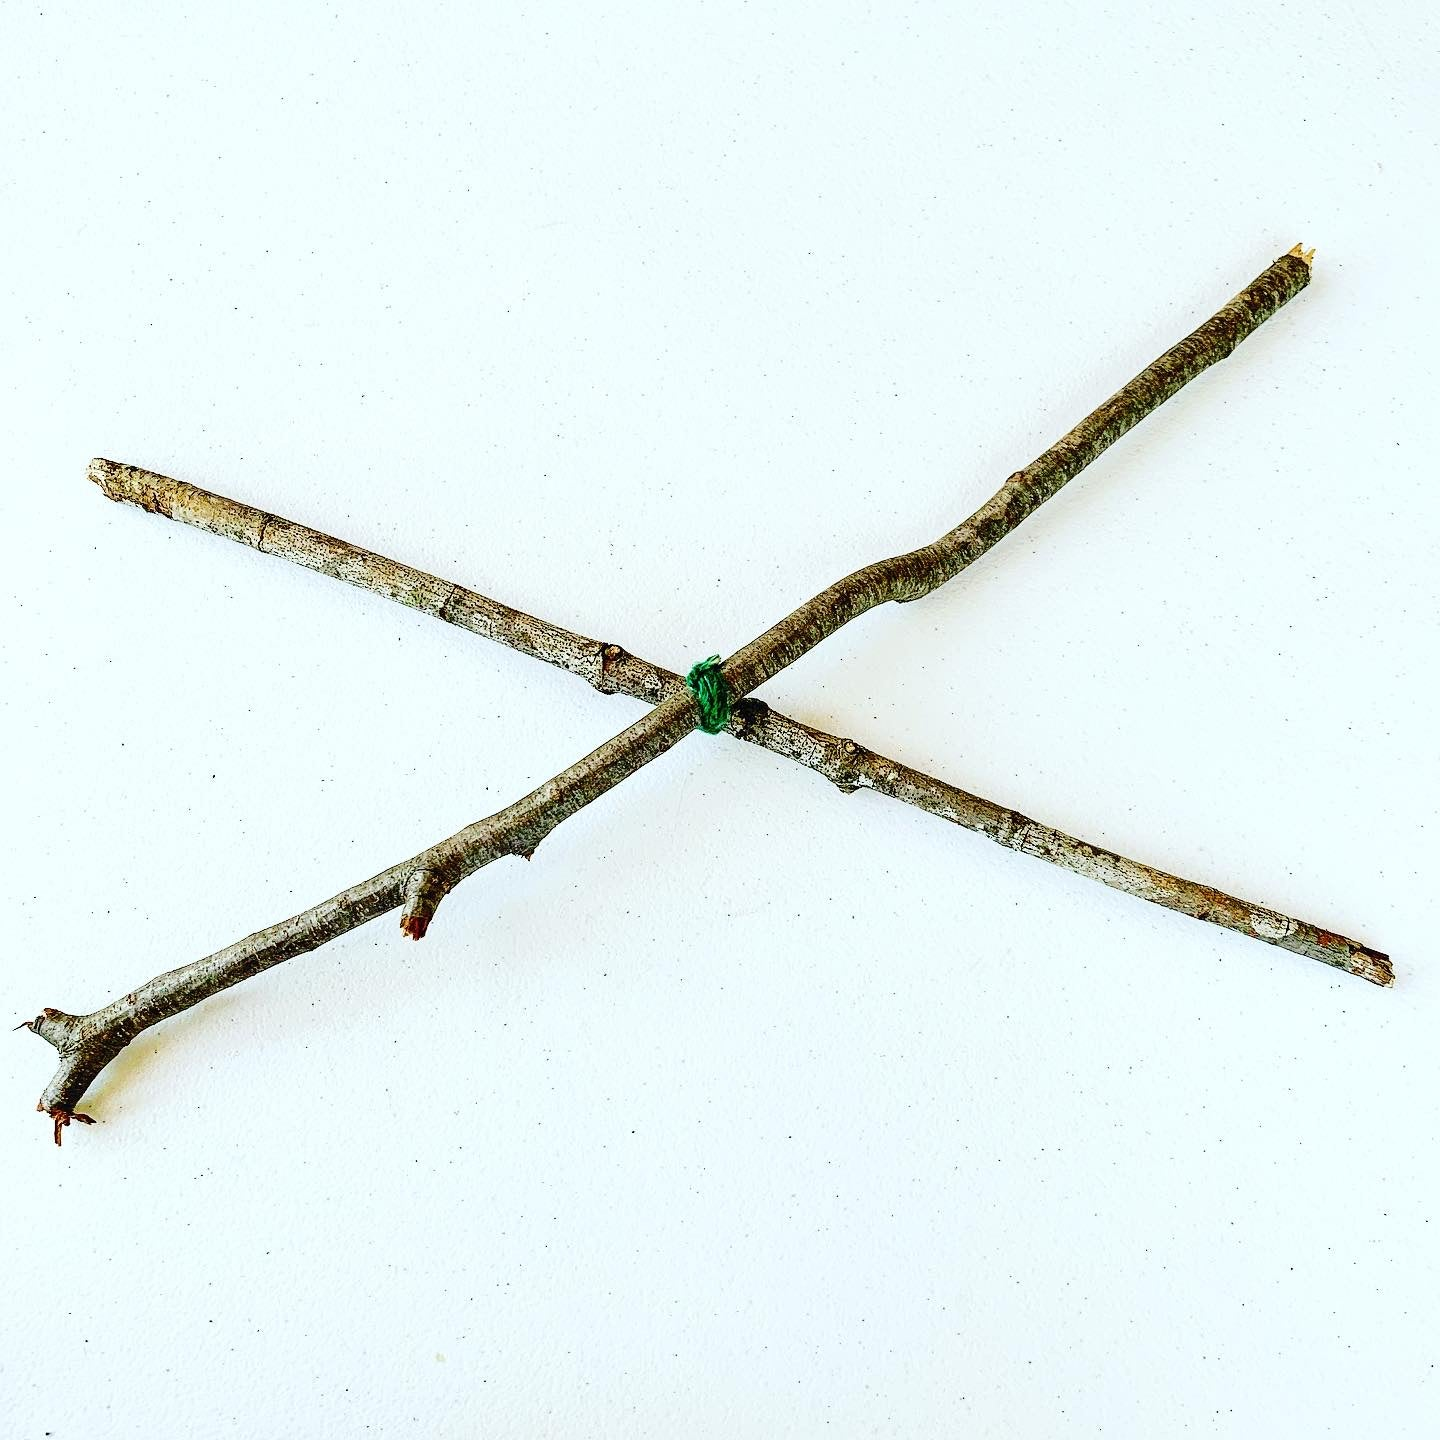 Photograph of two sticks overlapping each other to form a X tied together in the middle with blue-green yarn.